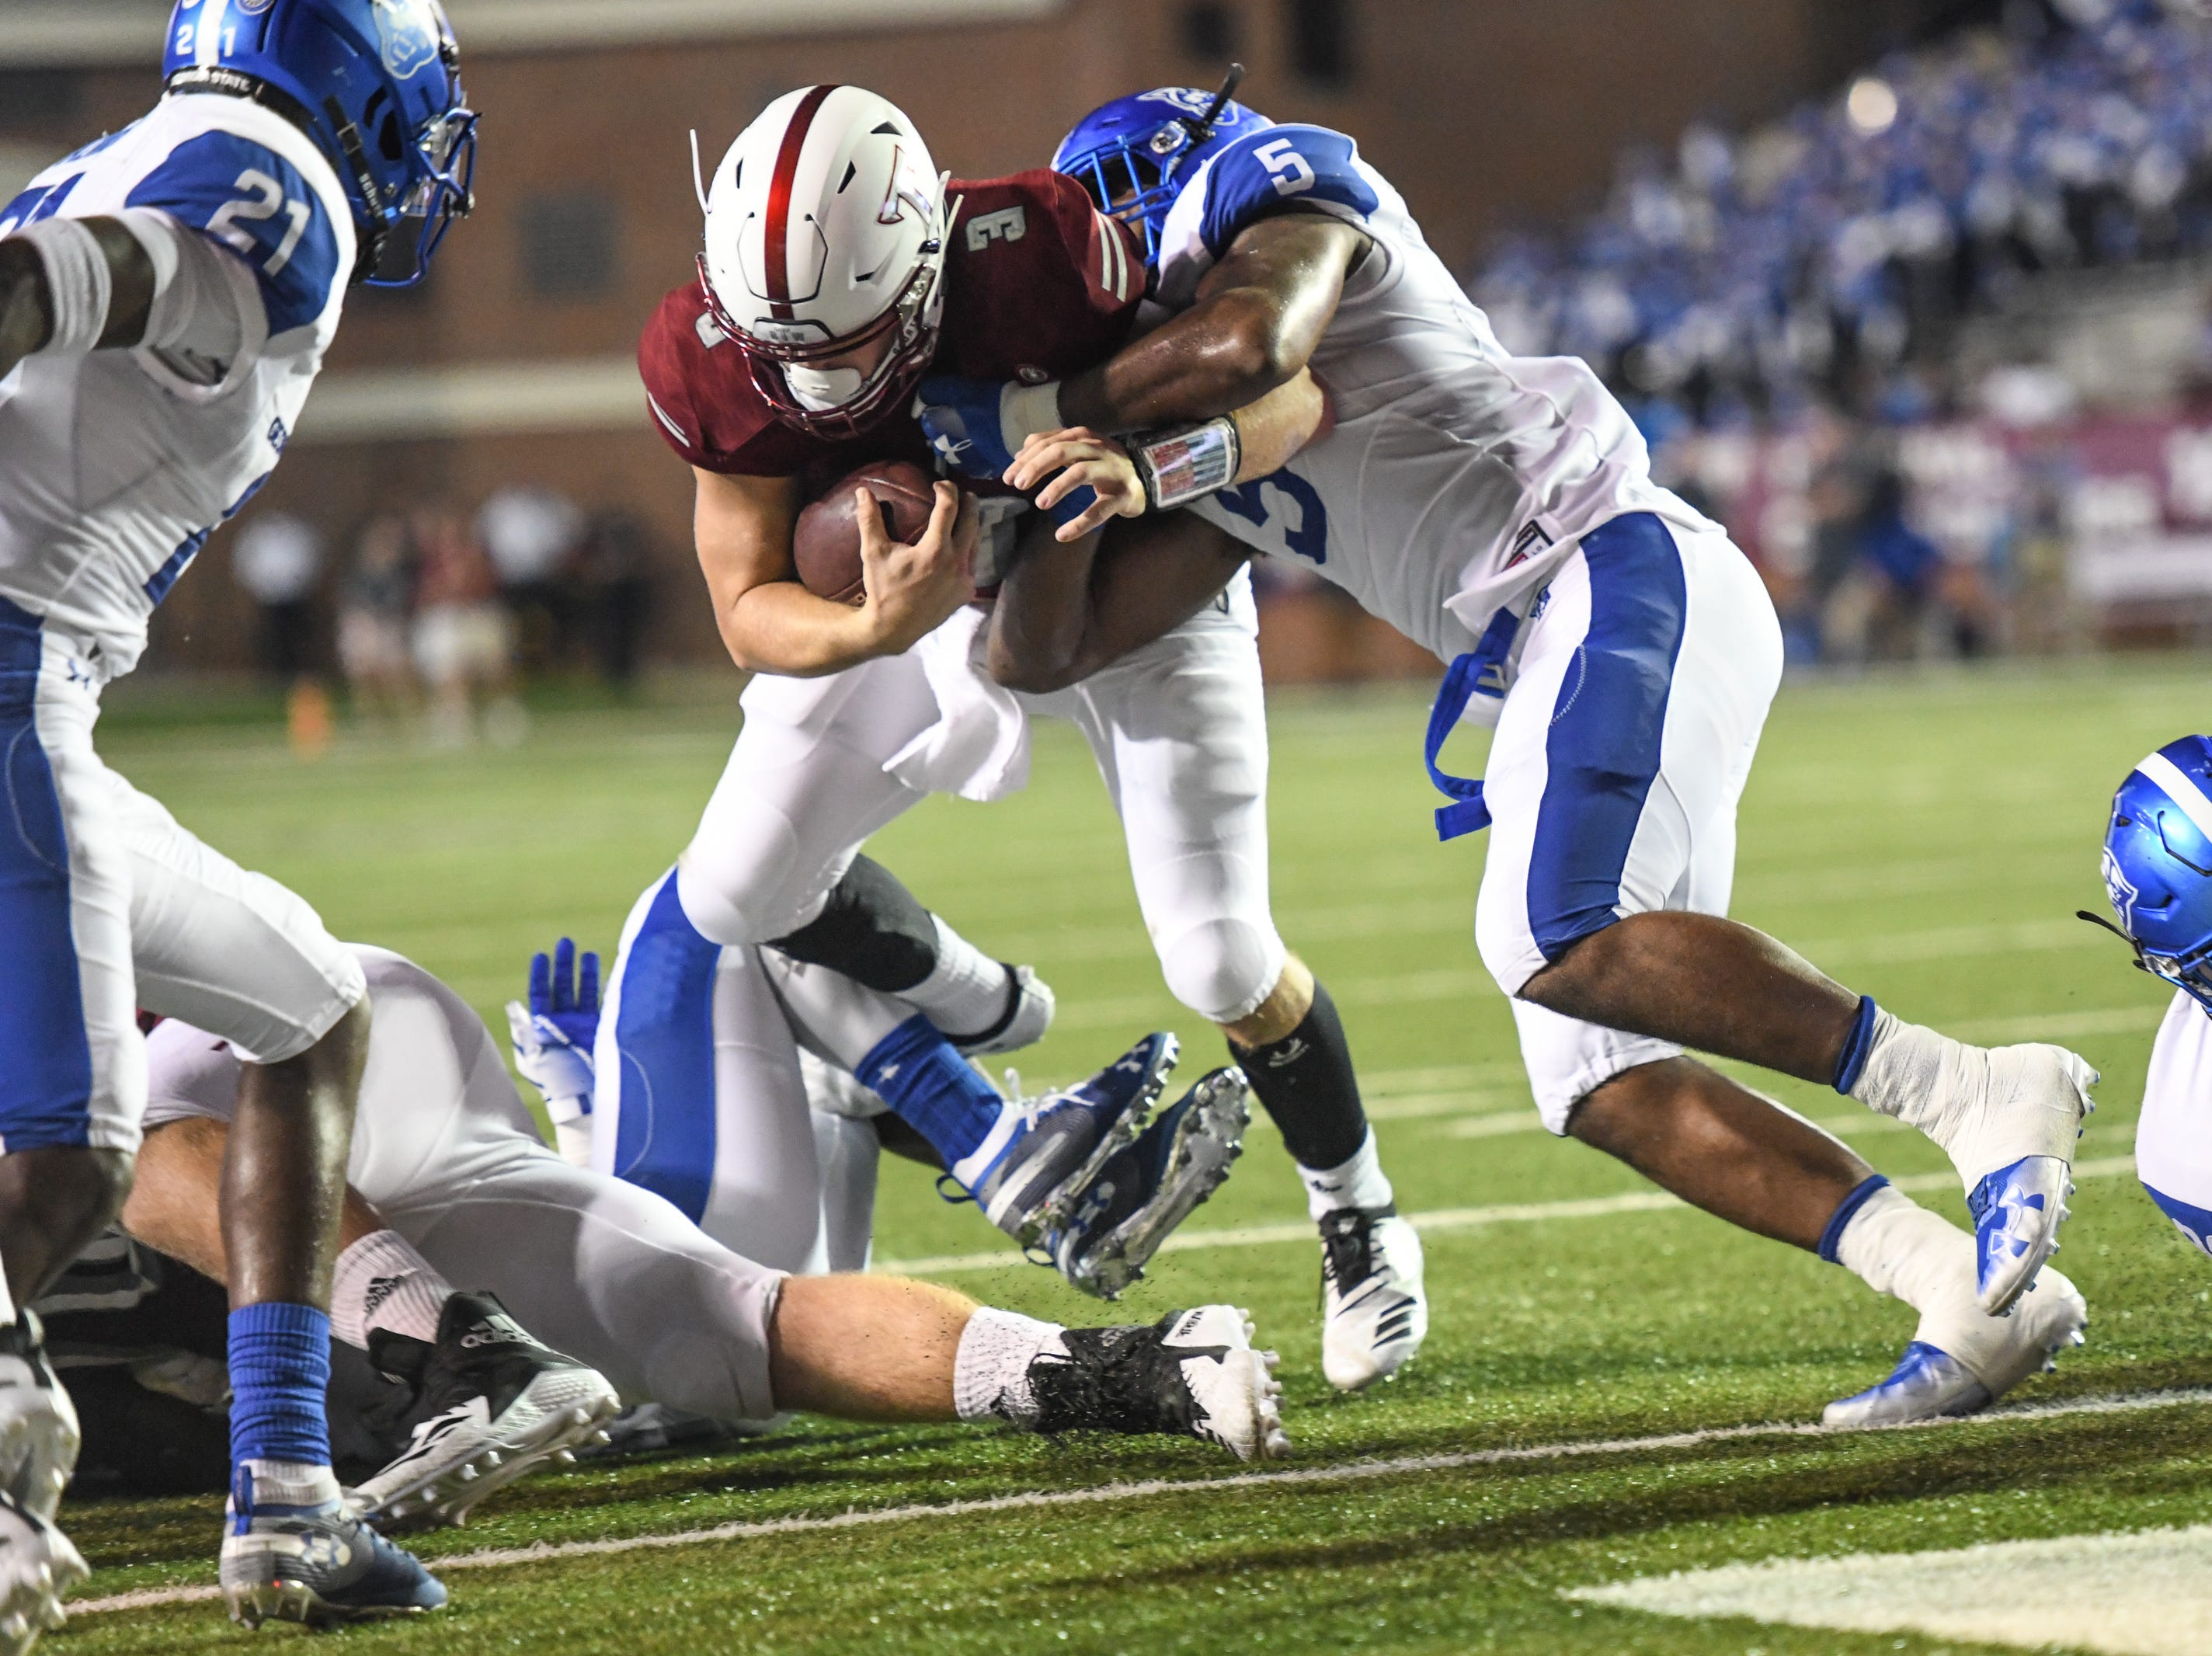 Troy Trojans quarterback Sawyer Smith (3) is stopped at the line by Georgia State Panthers linebacker Chase Middleton (5) during the first half at Veteran's Memorial Stadium in Troy, Ala., on Thursday, Oct. 4, 2018. (Chip Dillard/Special to the Montgomery Advertiser)